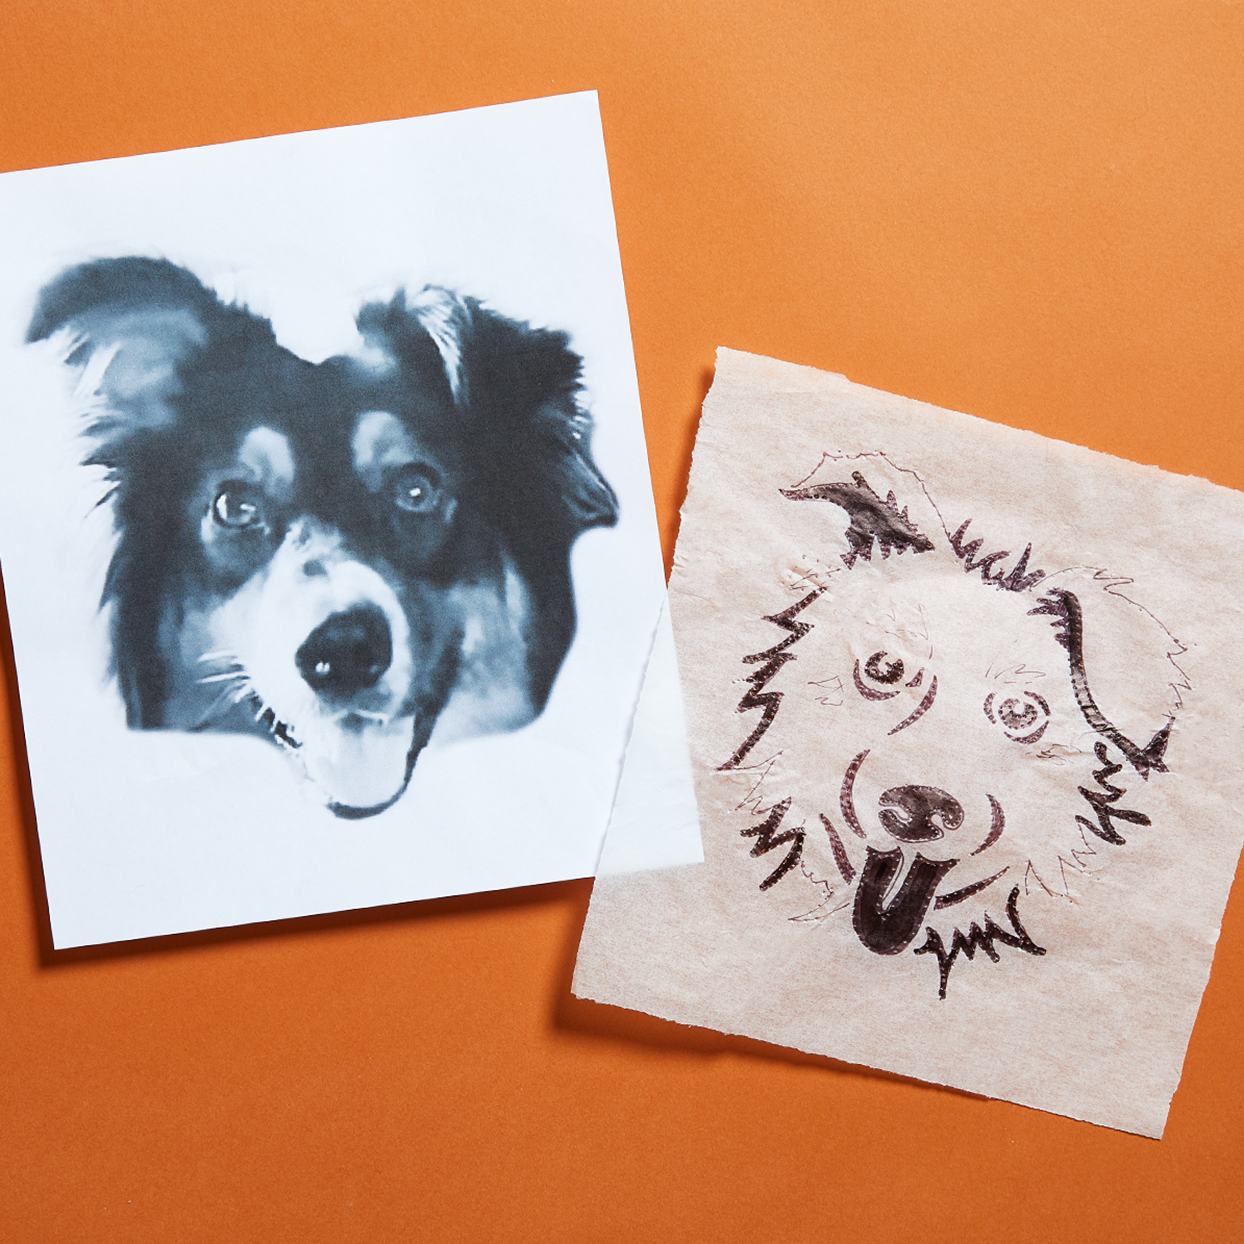 Dog drawing traced on tracing paper for a pumpkin carving lying on an orange background